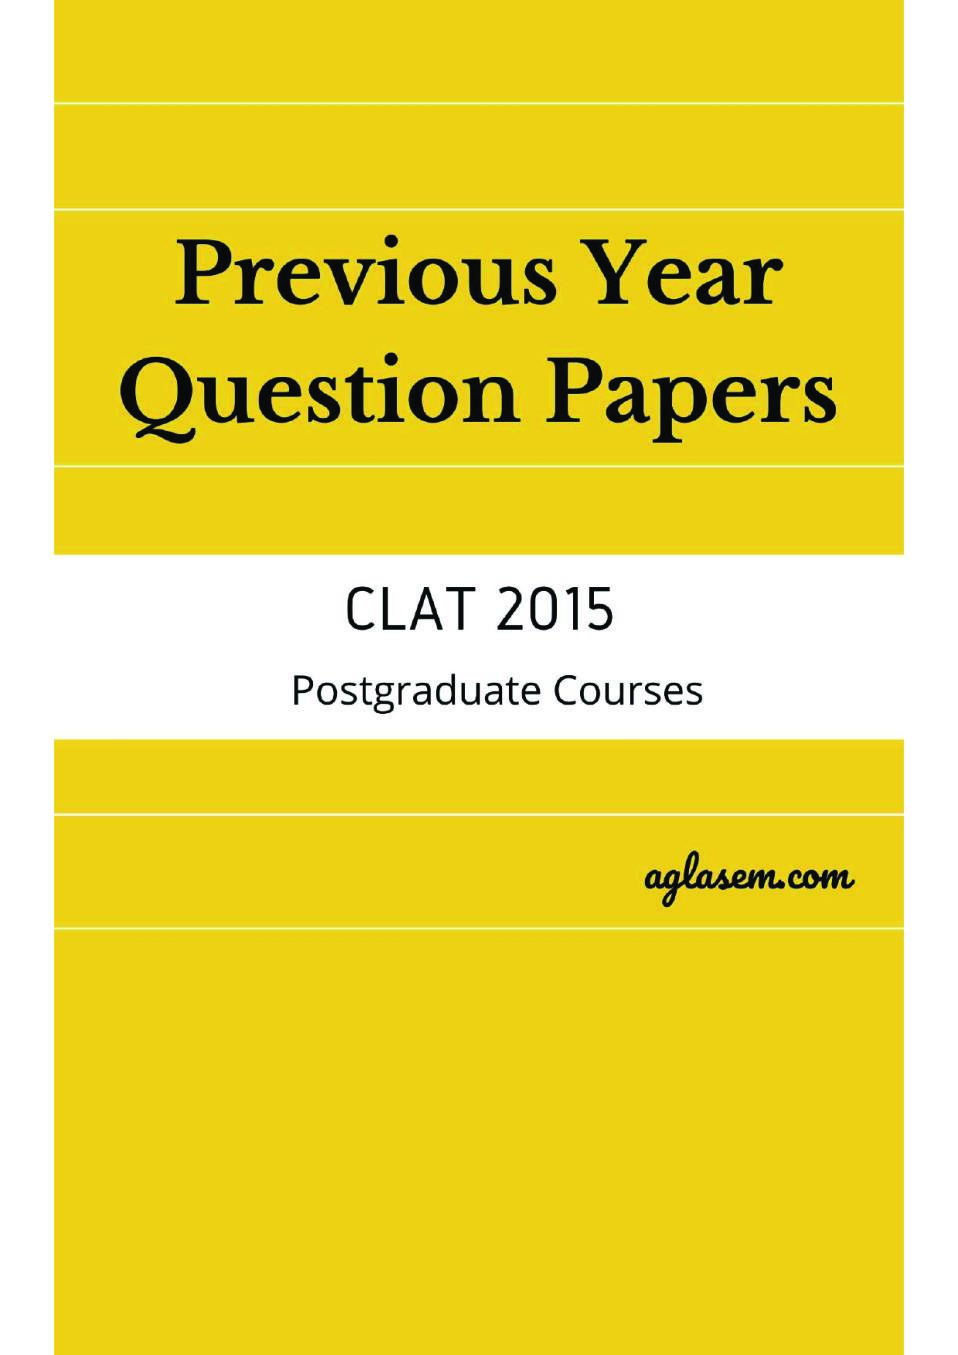 CLAT LLM 2015 Question Paper with Answers